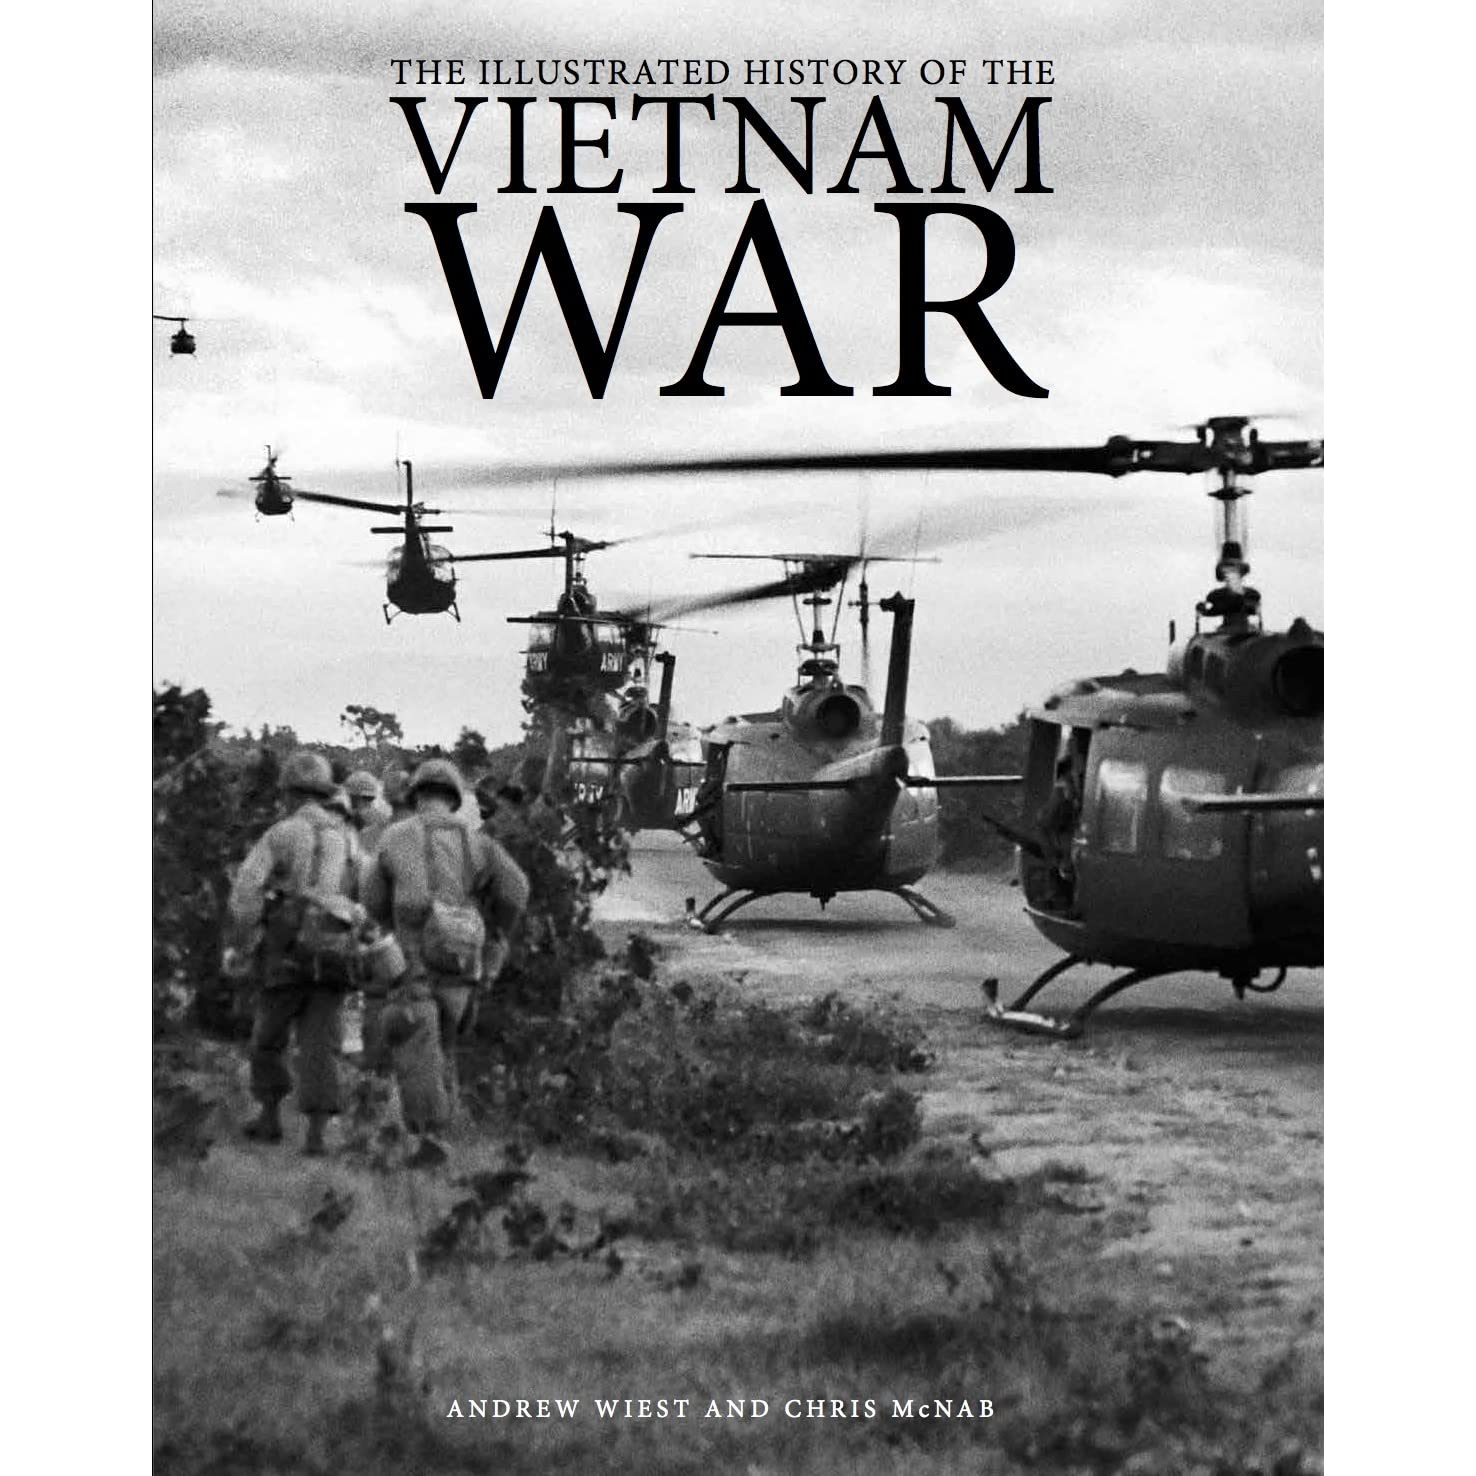 The Illustrated History of the Vietnam War by Andrew Wiest